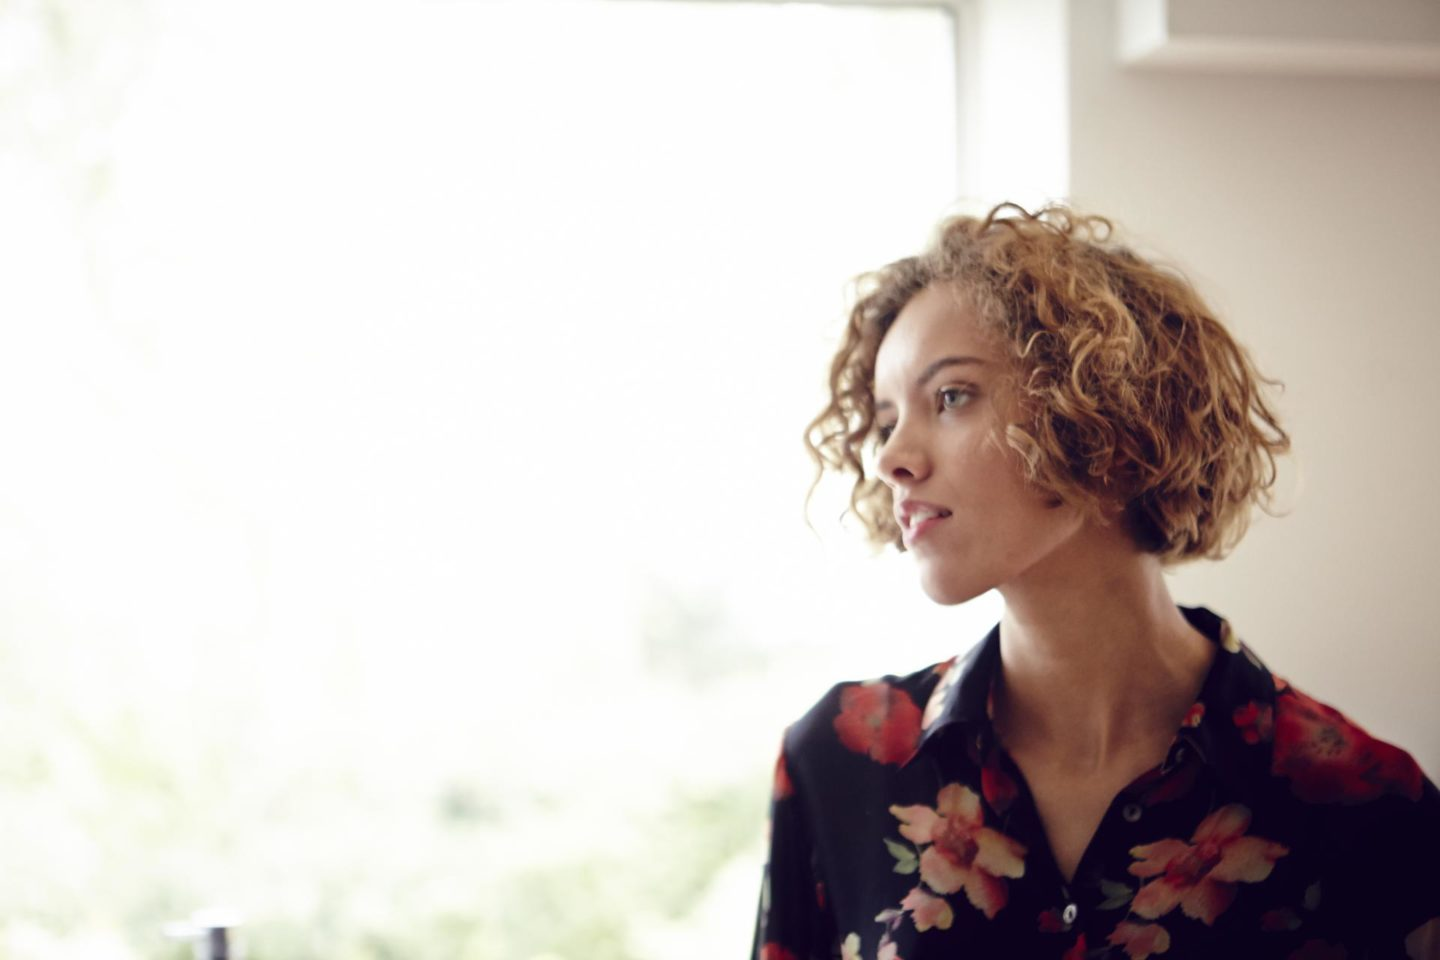 RUBY TANDOH ON RECOVERY, DEPRESSION & COFFEE ICE CREAM CRAVINGS